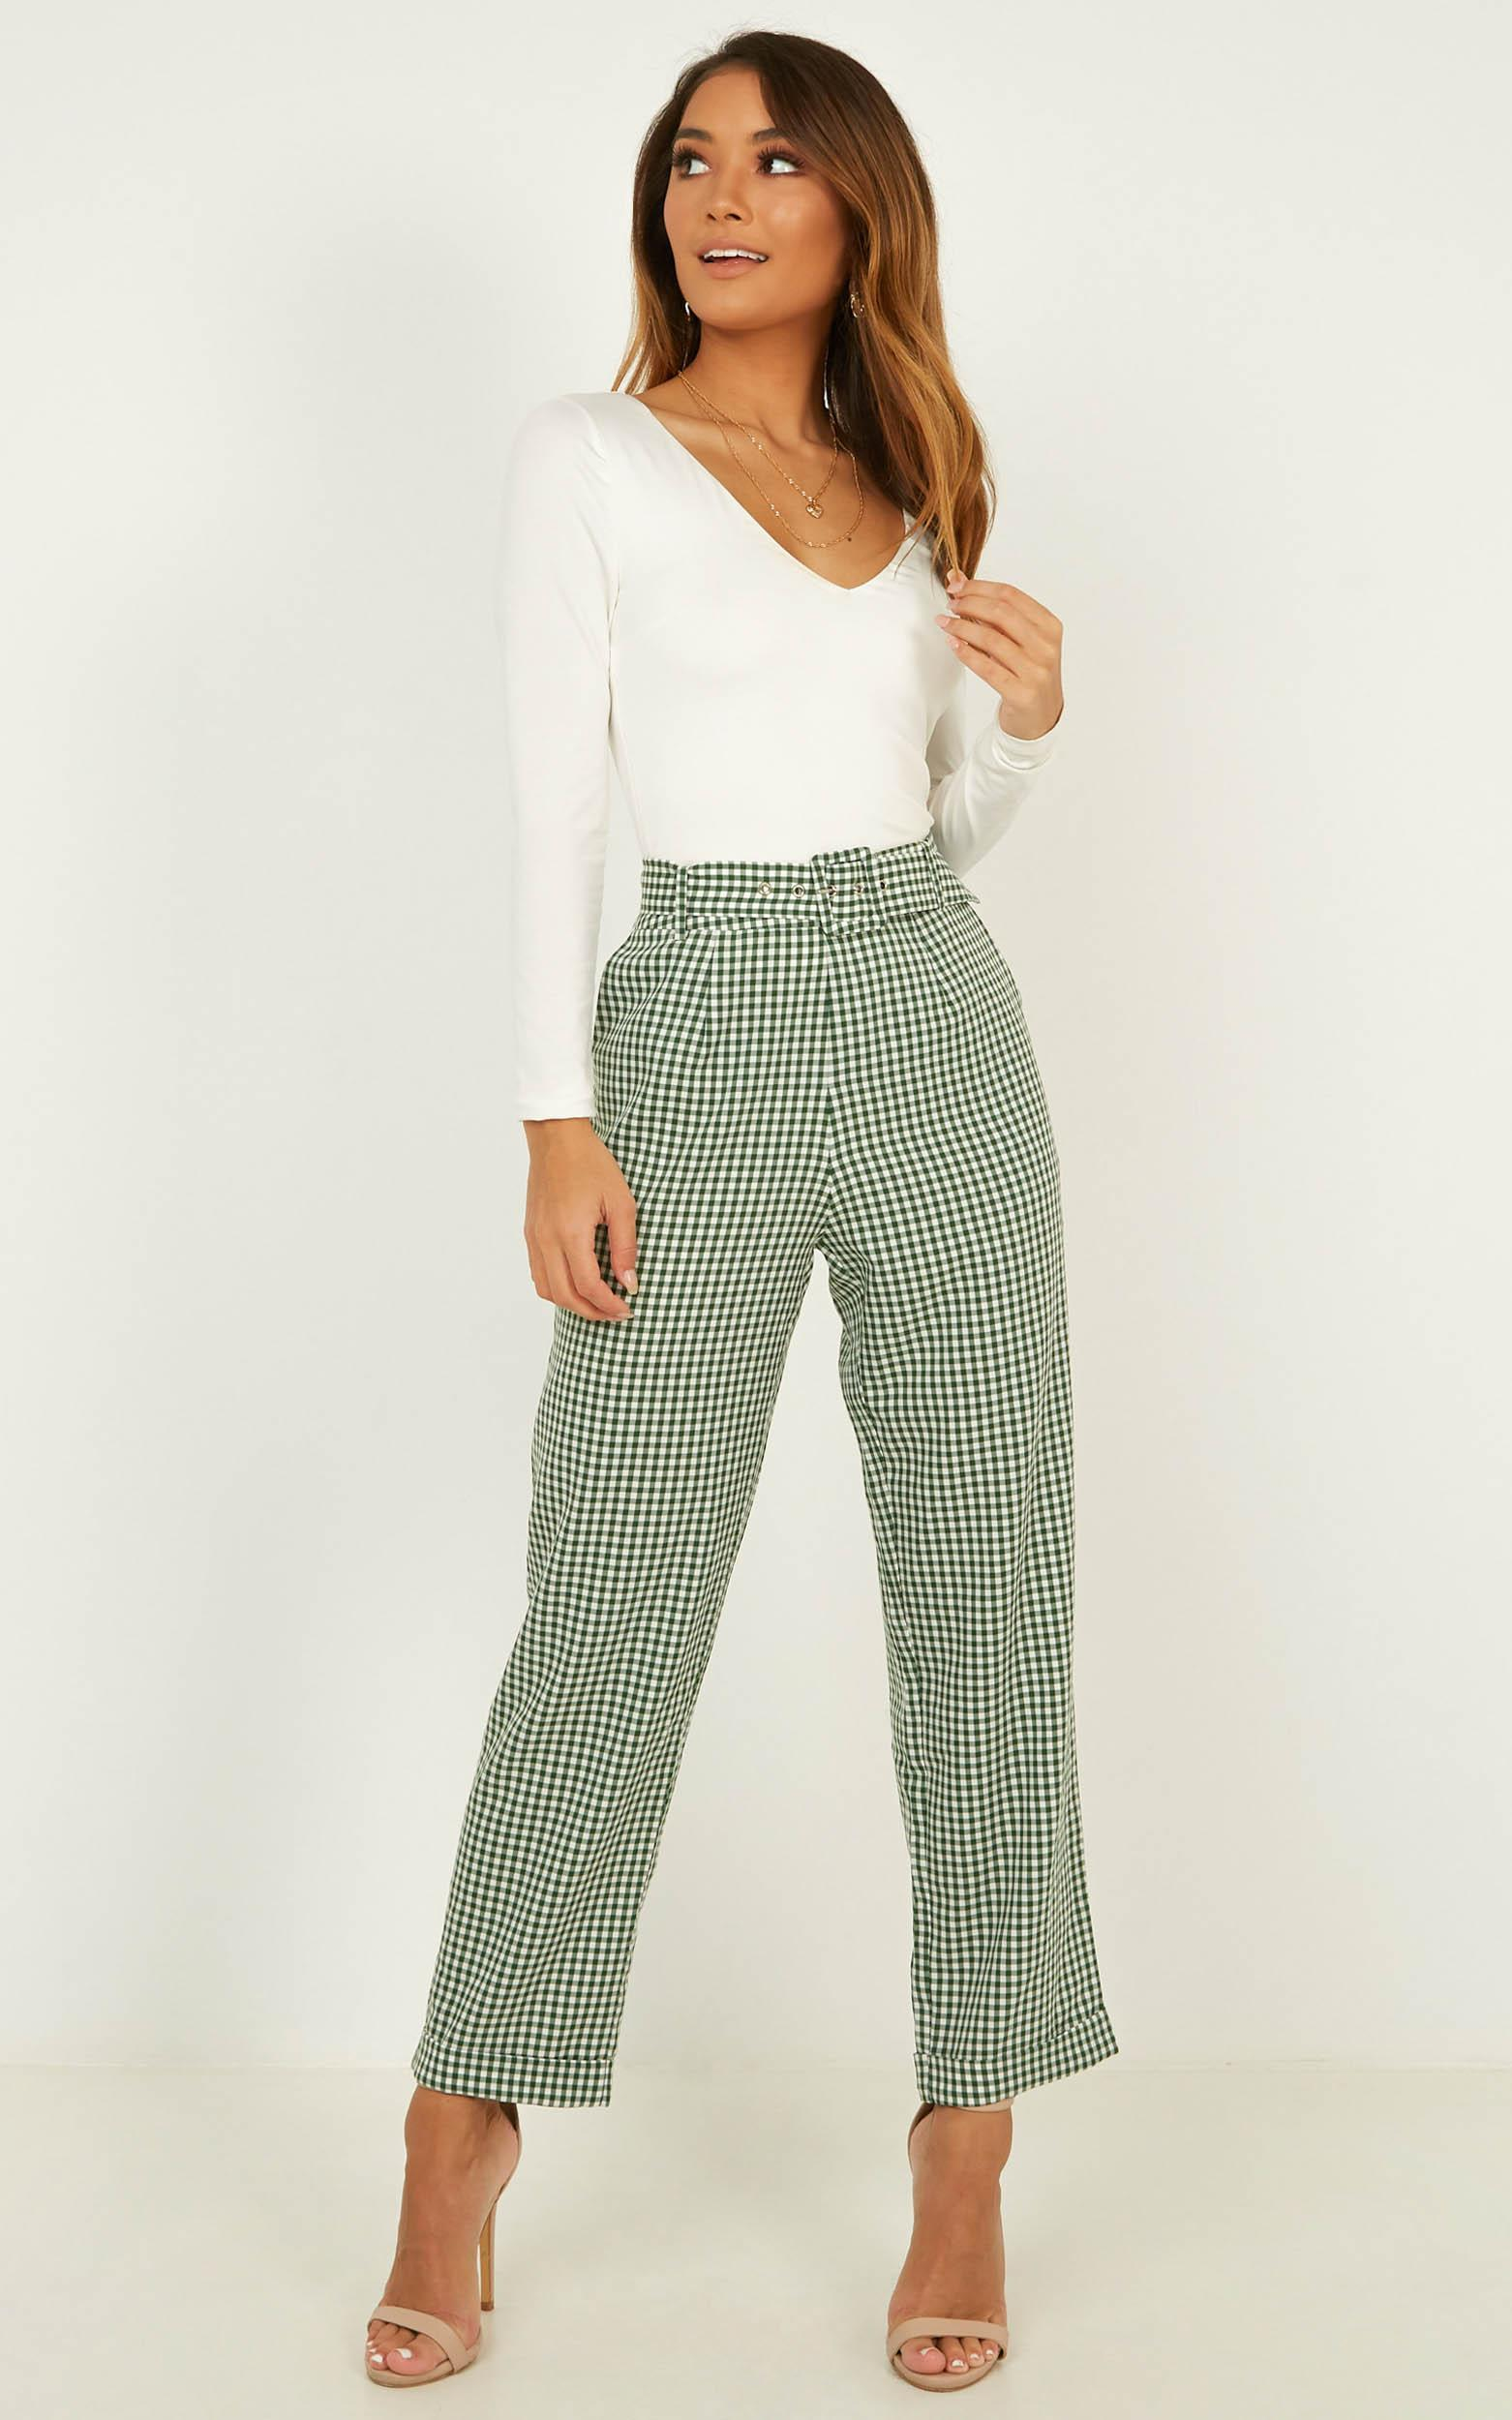 Eyes On The Road Pants In forest check- 18 (XXXL), Green, hi-res image number null